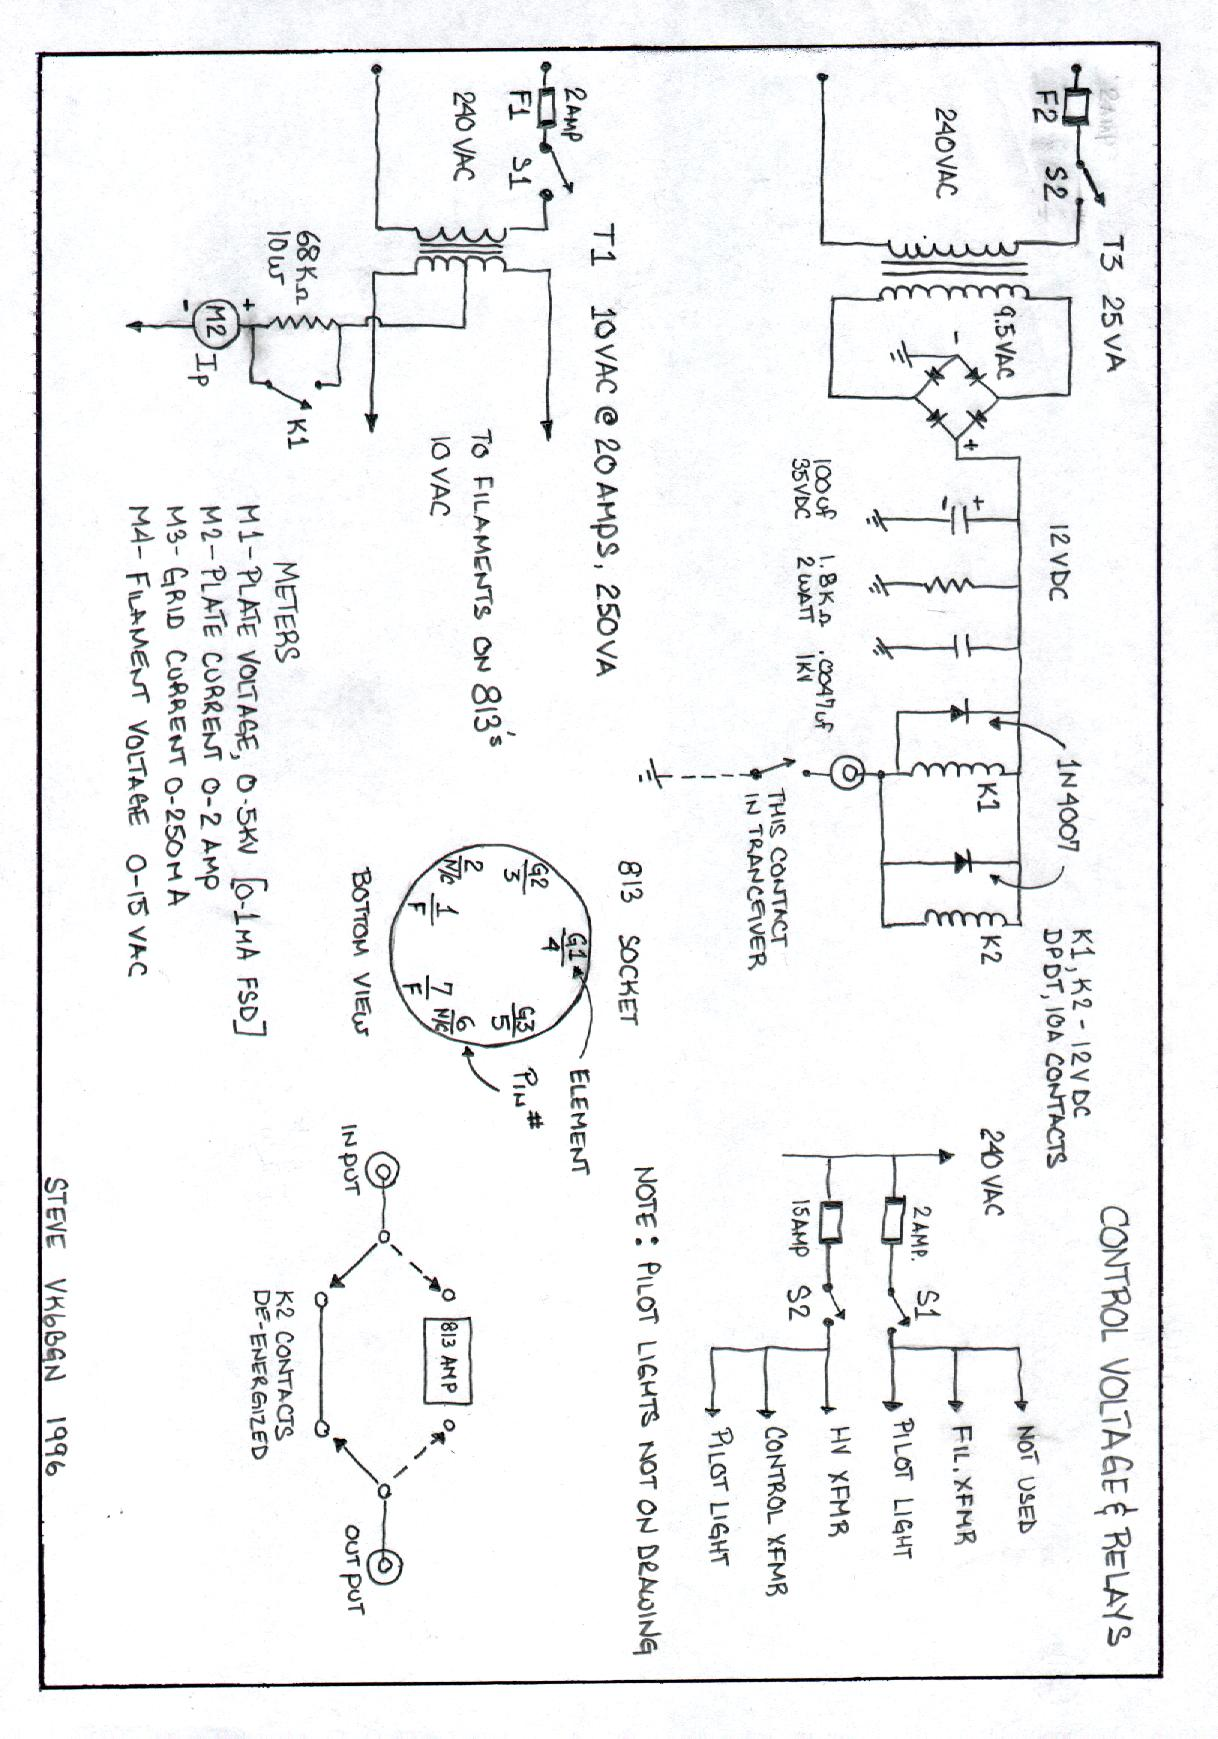 Four 813 G2daf Rf Amplifier